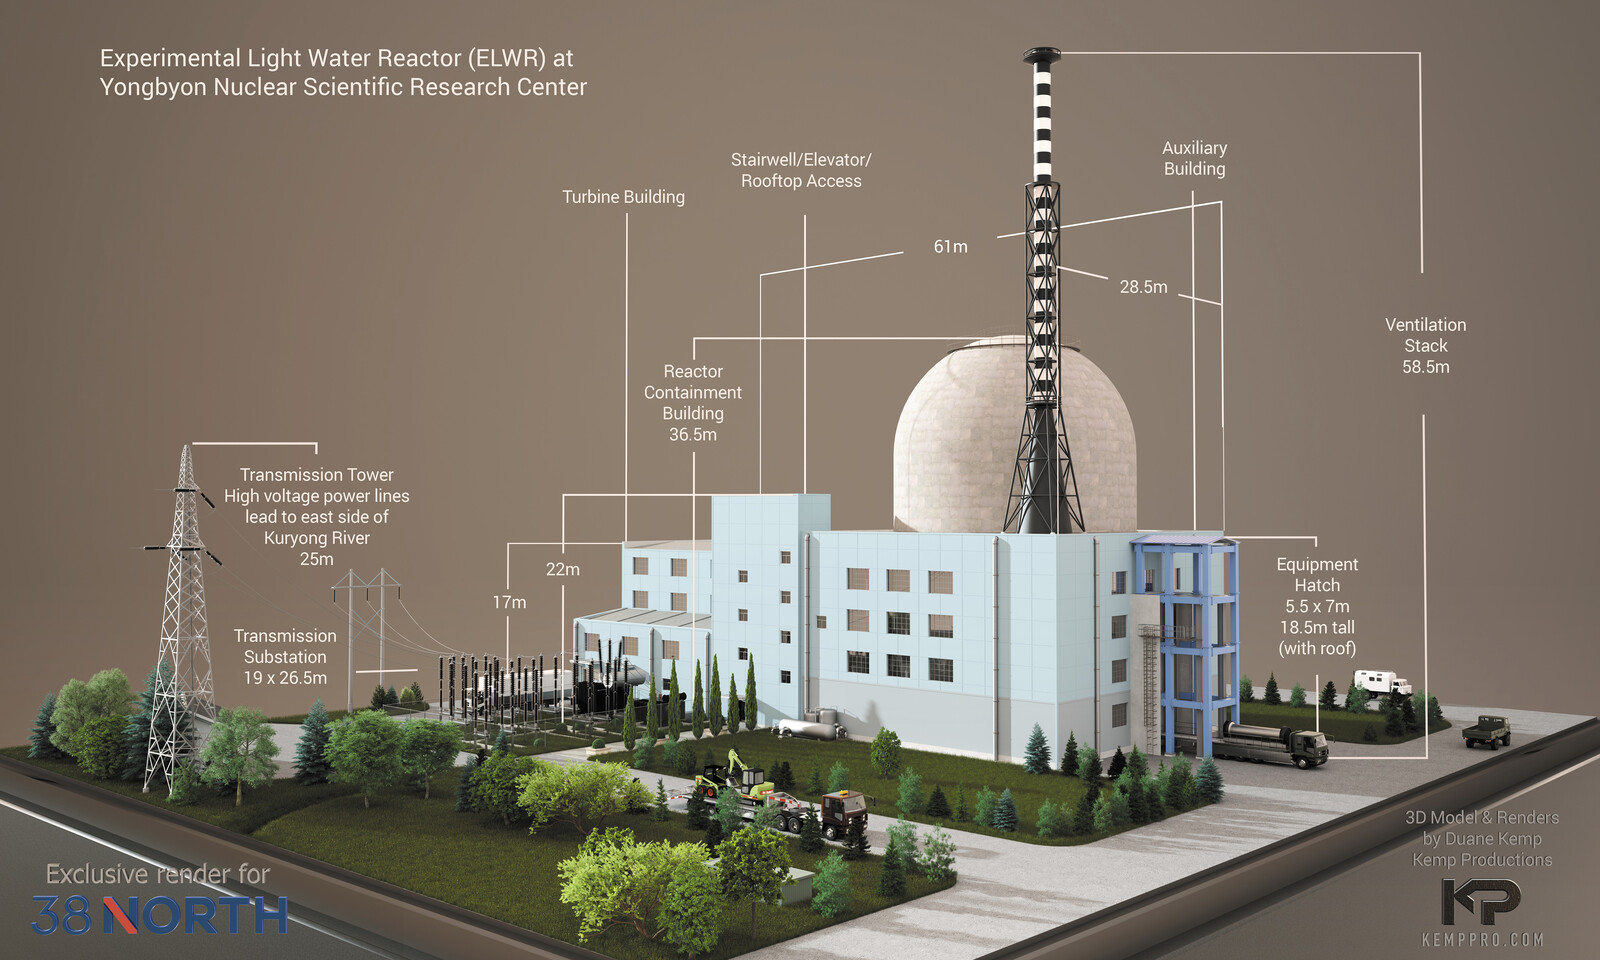 DPRK ELWR (Experimental Light Water Reactor) for 38 North's website presentation: https://www.38north.org/resources/2021/04/photo-galleries/yongbyon-experimental-light-water-reactor-render/ -Detail-work-5b-Display-test-Scene-31-5-3-6666x4000-14h25m07s